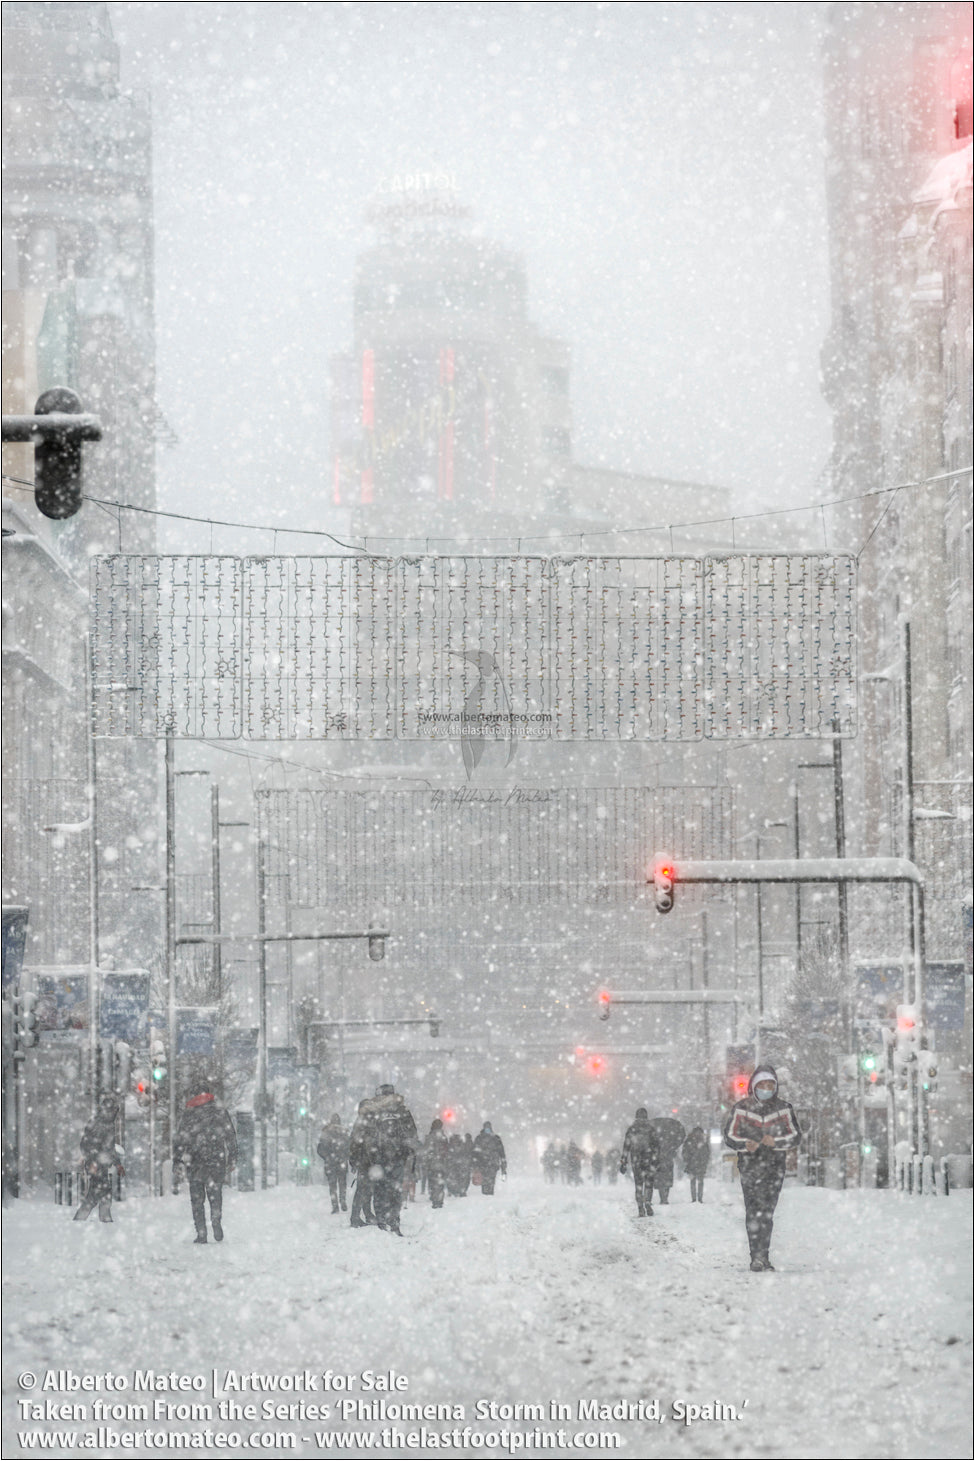 Gran Via, Edificio Capitol, Filomena Winter Snow Storm, Madrid, Spain.